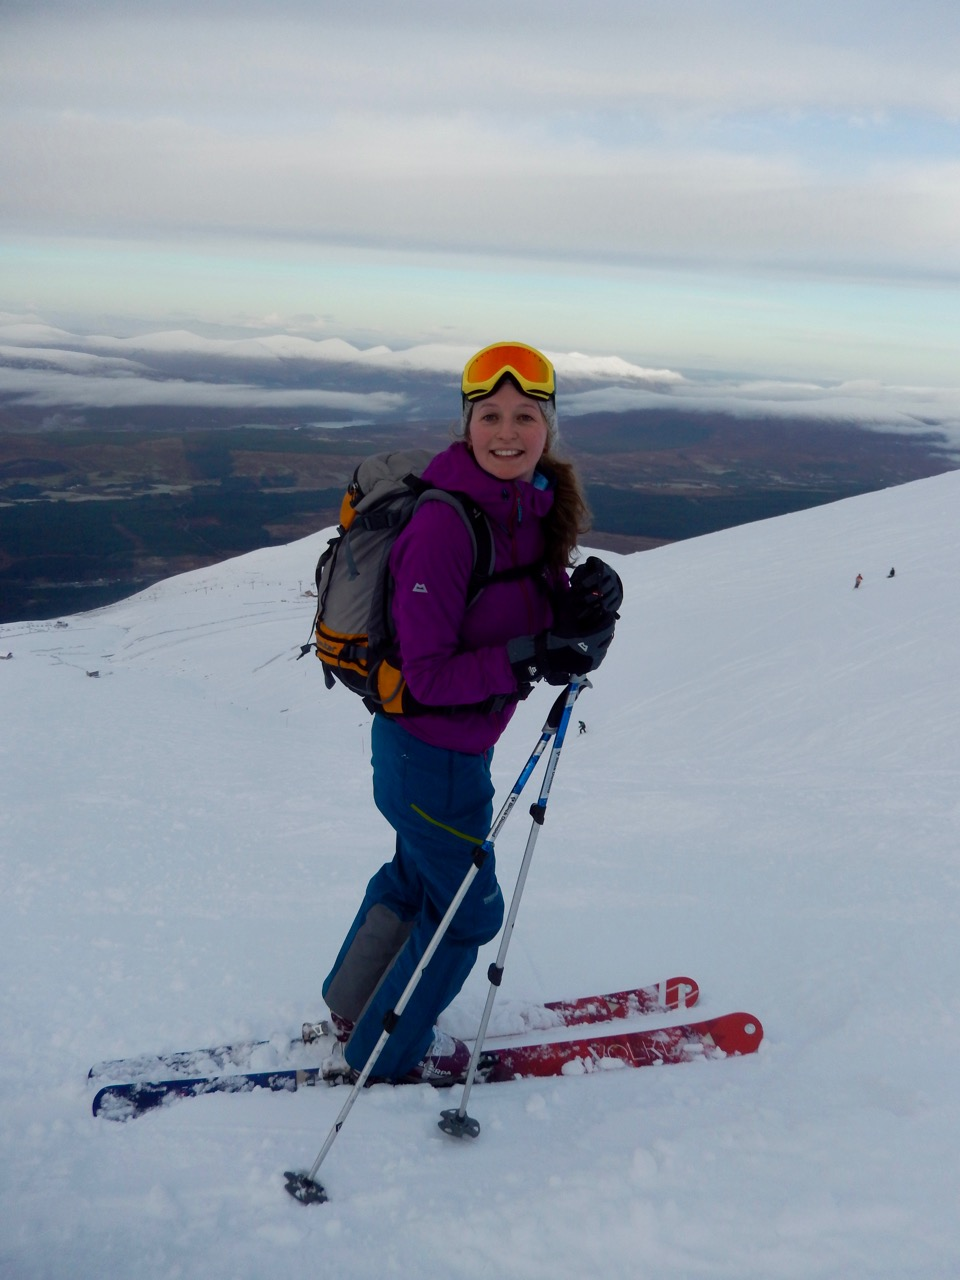 Mairi enjoying new skis at Nevis range